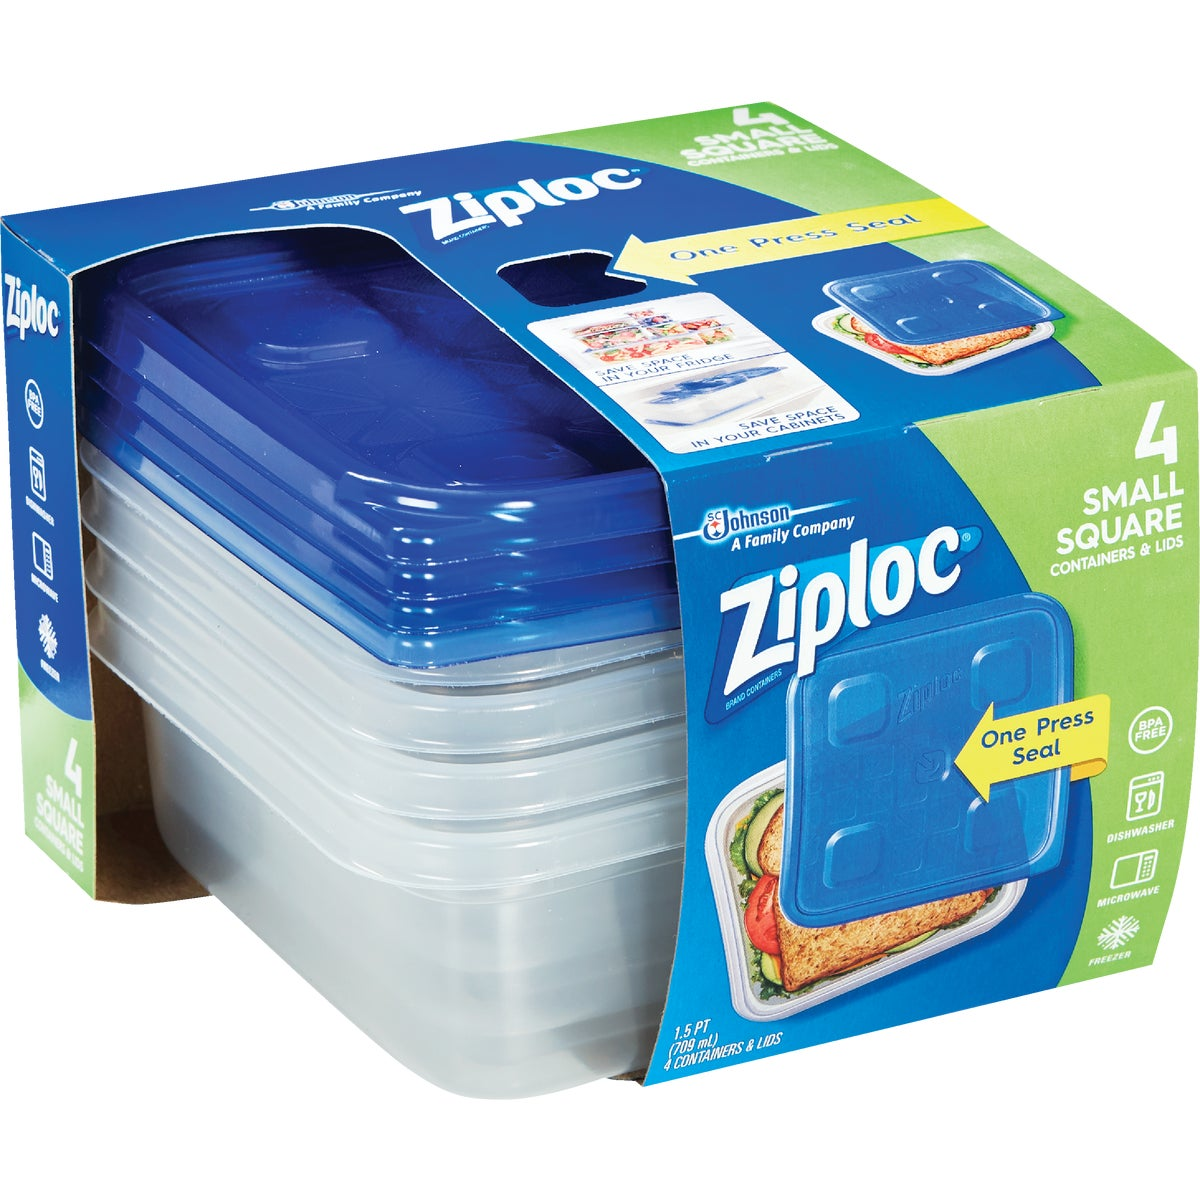 5 PACK FREEZER CONTAINER - 10878 by Sc Johnson